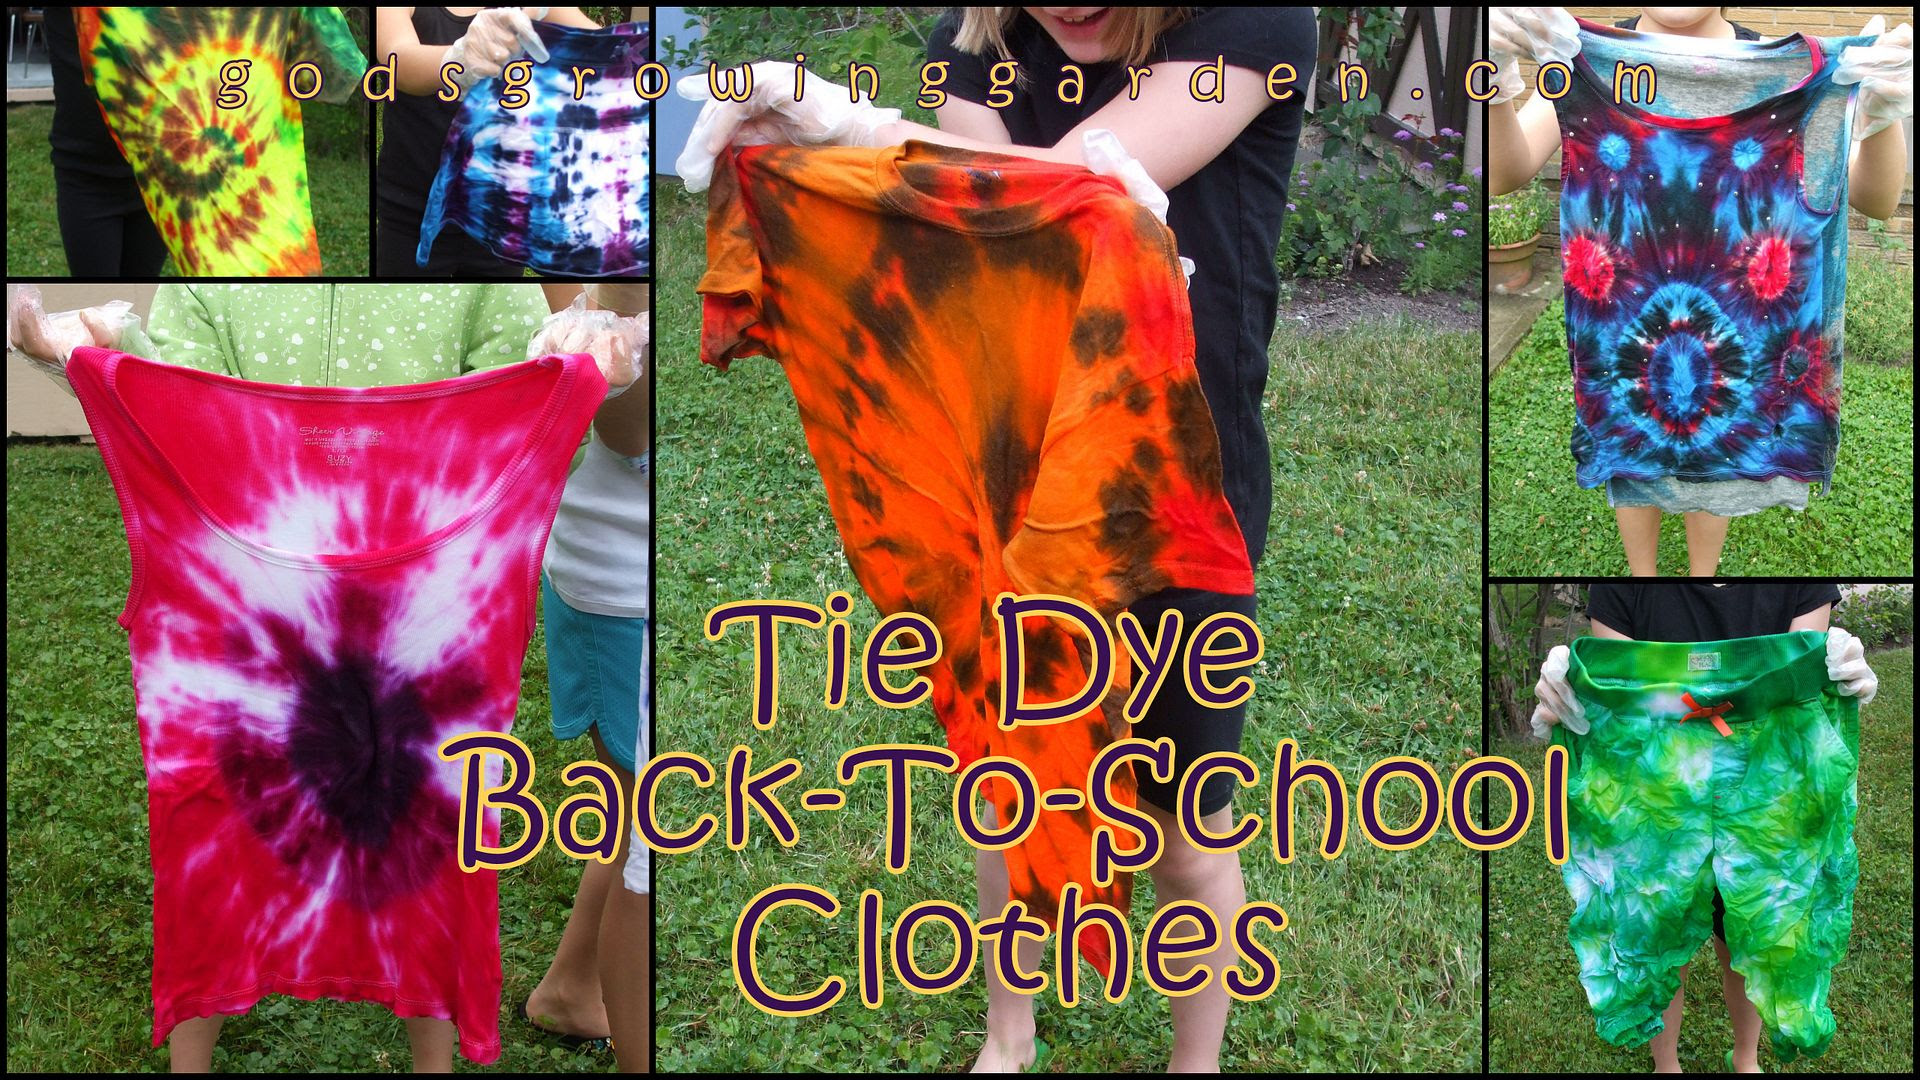 Tie Dye by Angie Ouellette-Tower for godsgrowinggarden.com photo 2014-08-06_zps8f1993bd.jpg